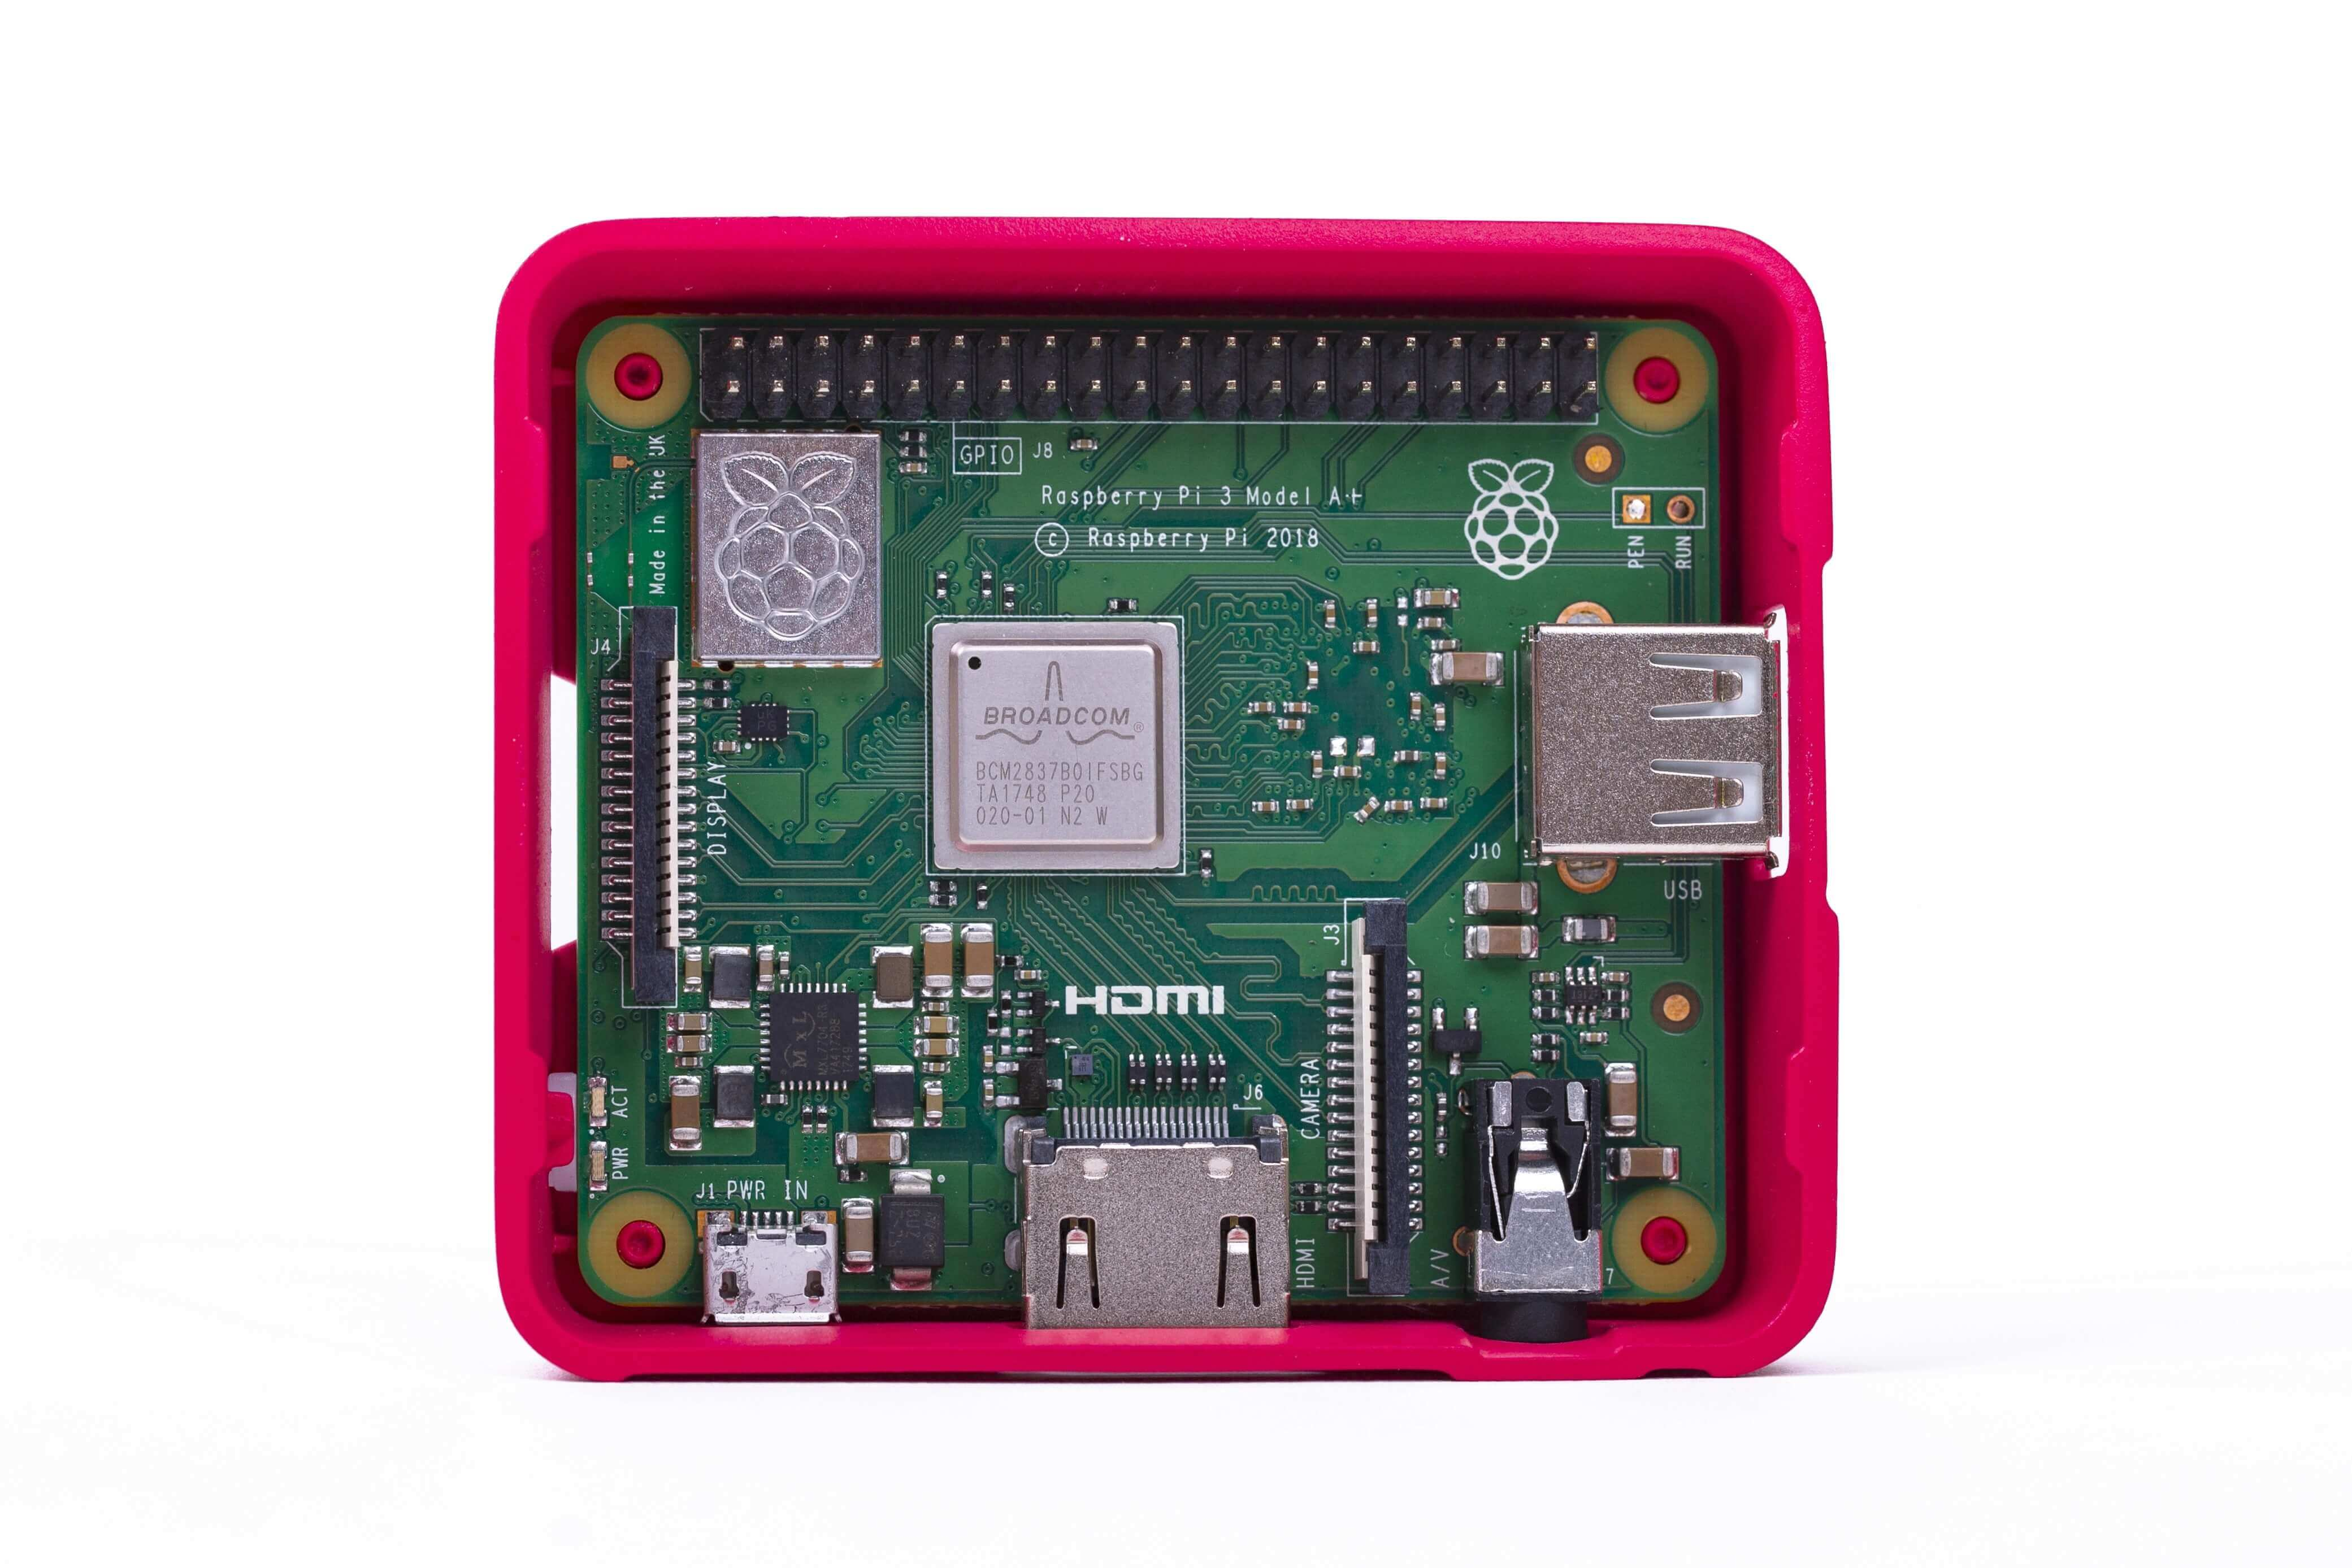 Makers rejoice: Raspberry Pi 3 Model A+ is out